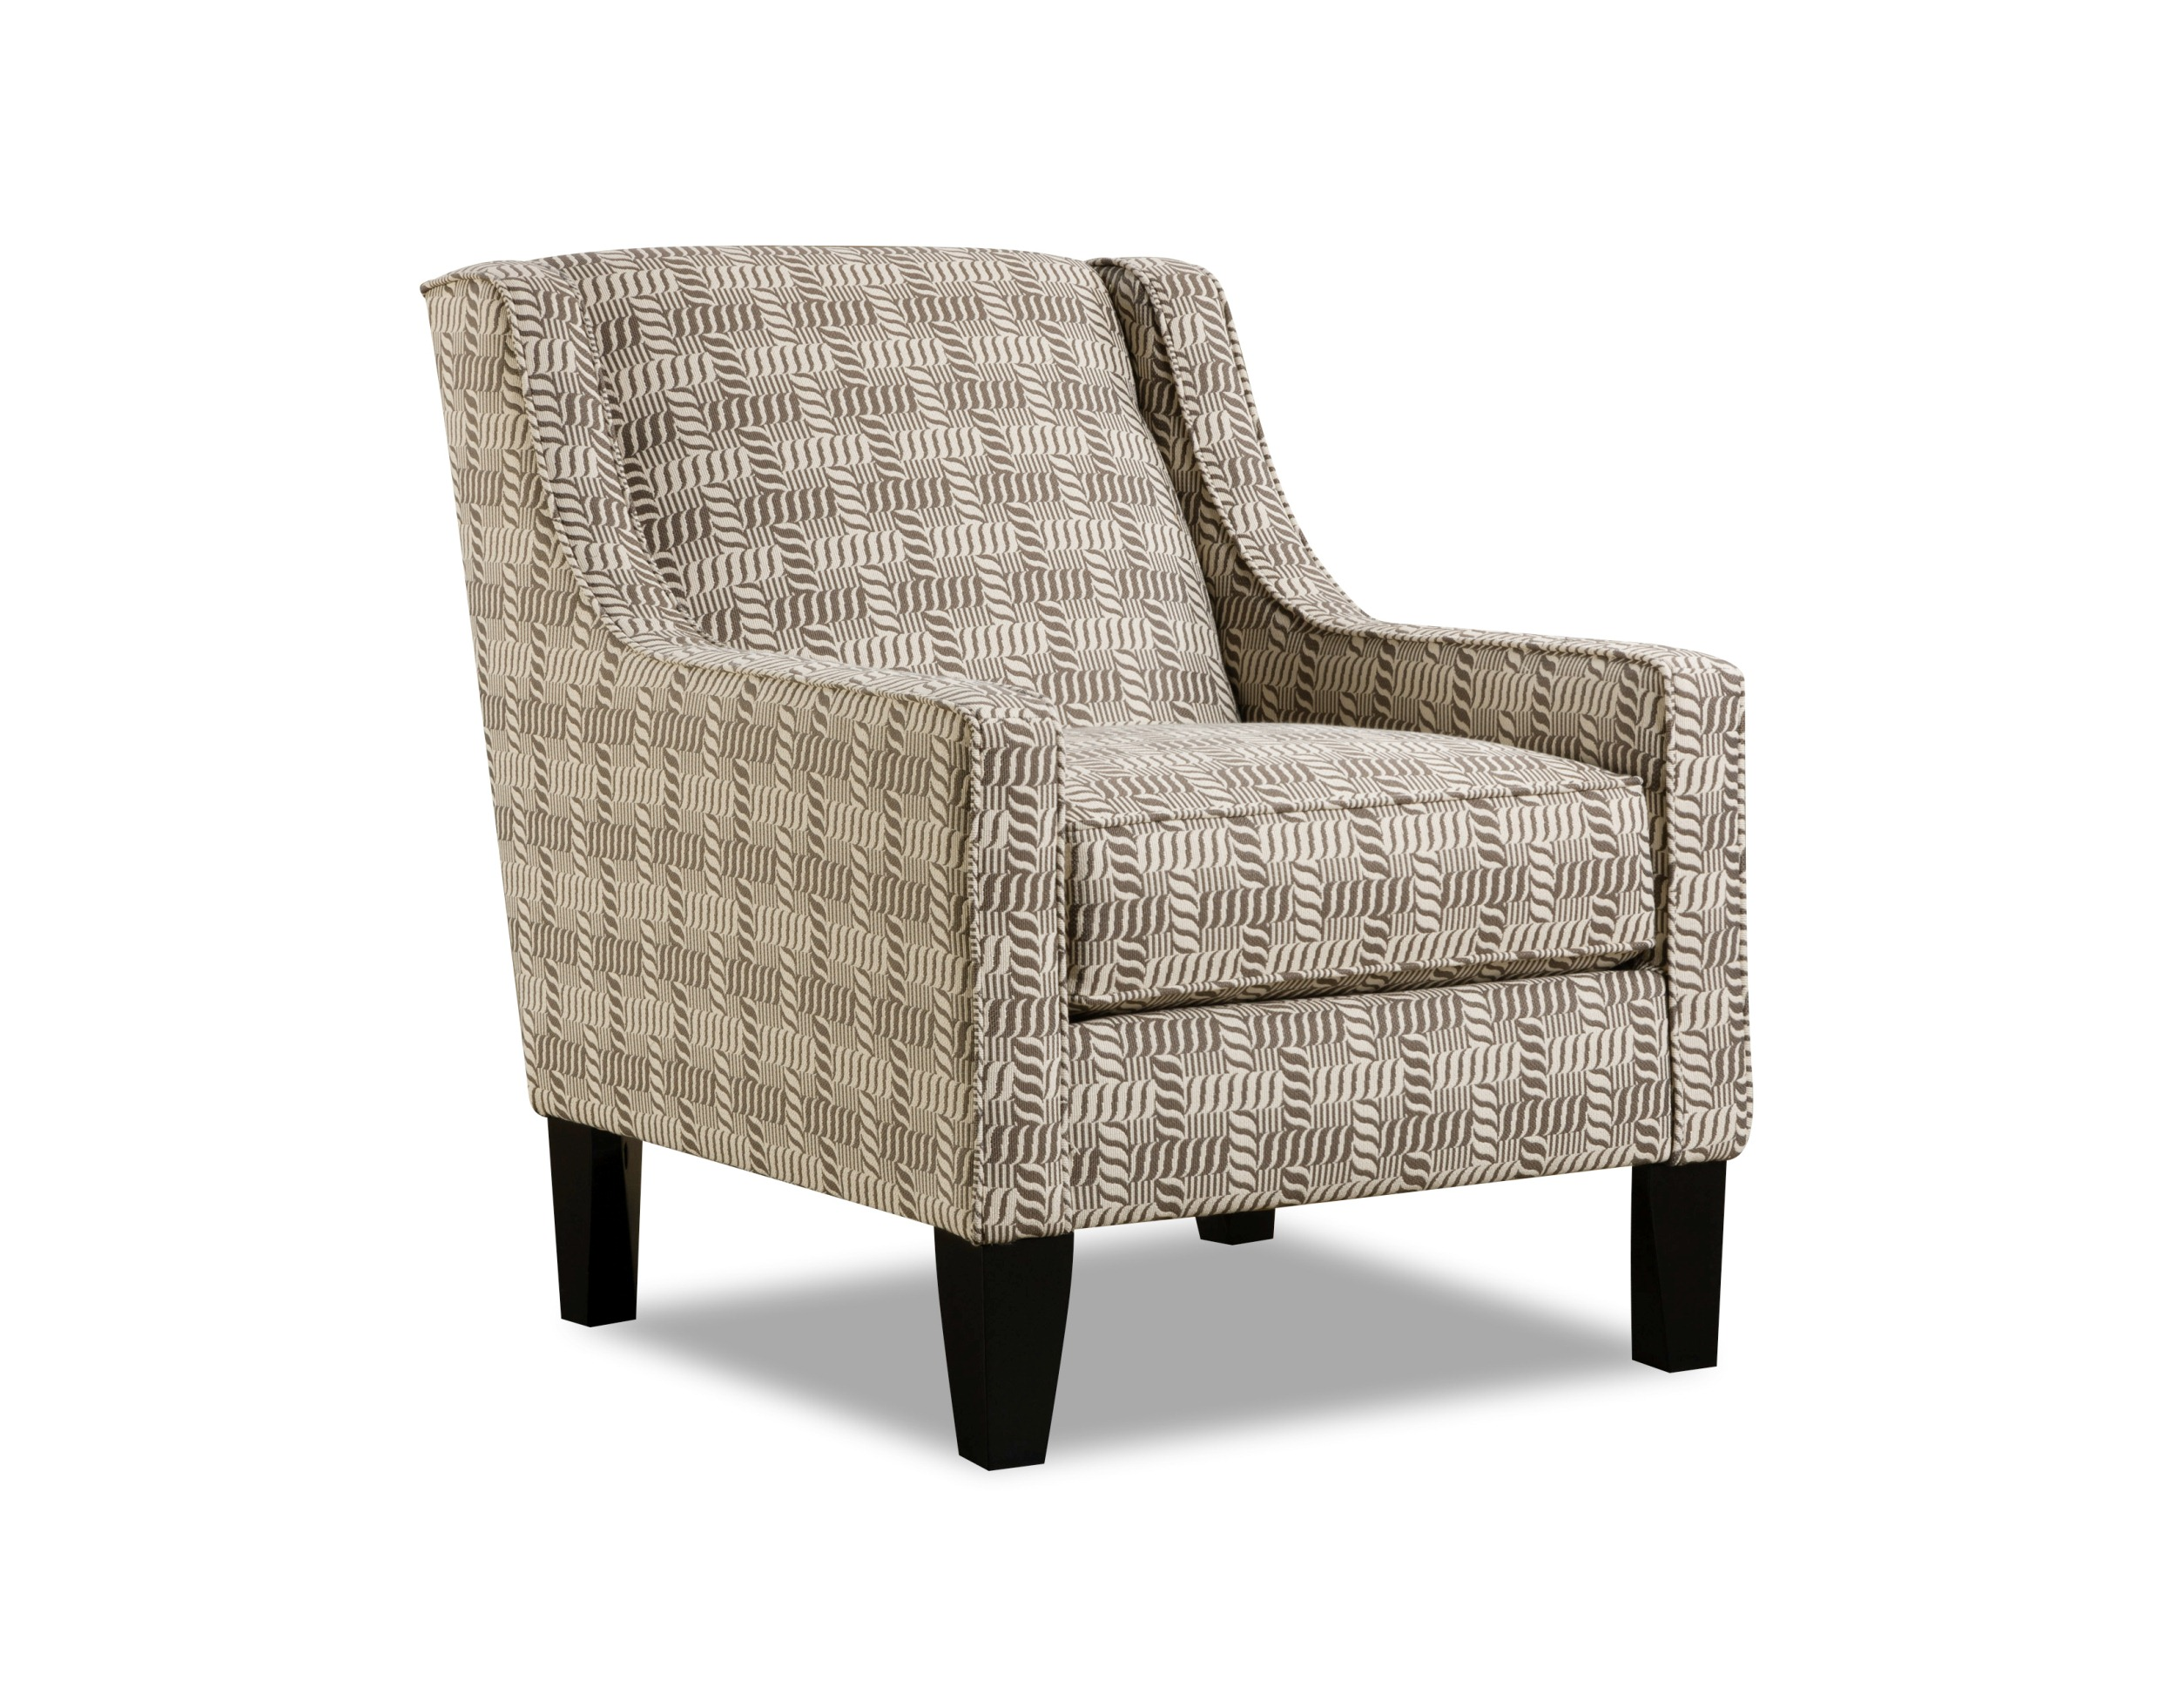 sears accent chairs striped dining chair simmons halyard seal shop your way online shopping